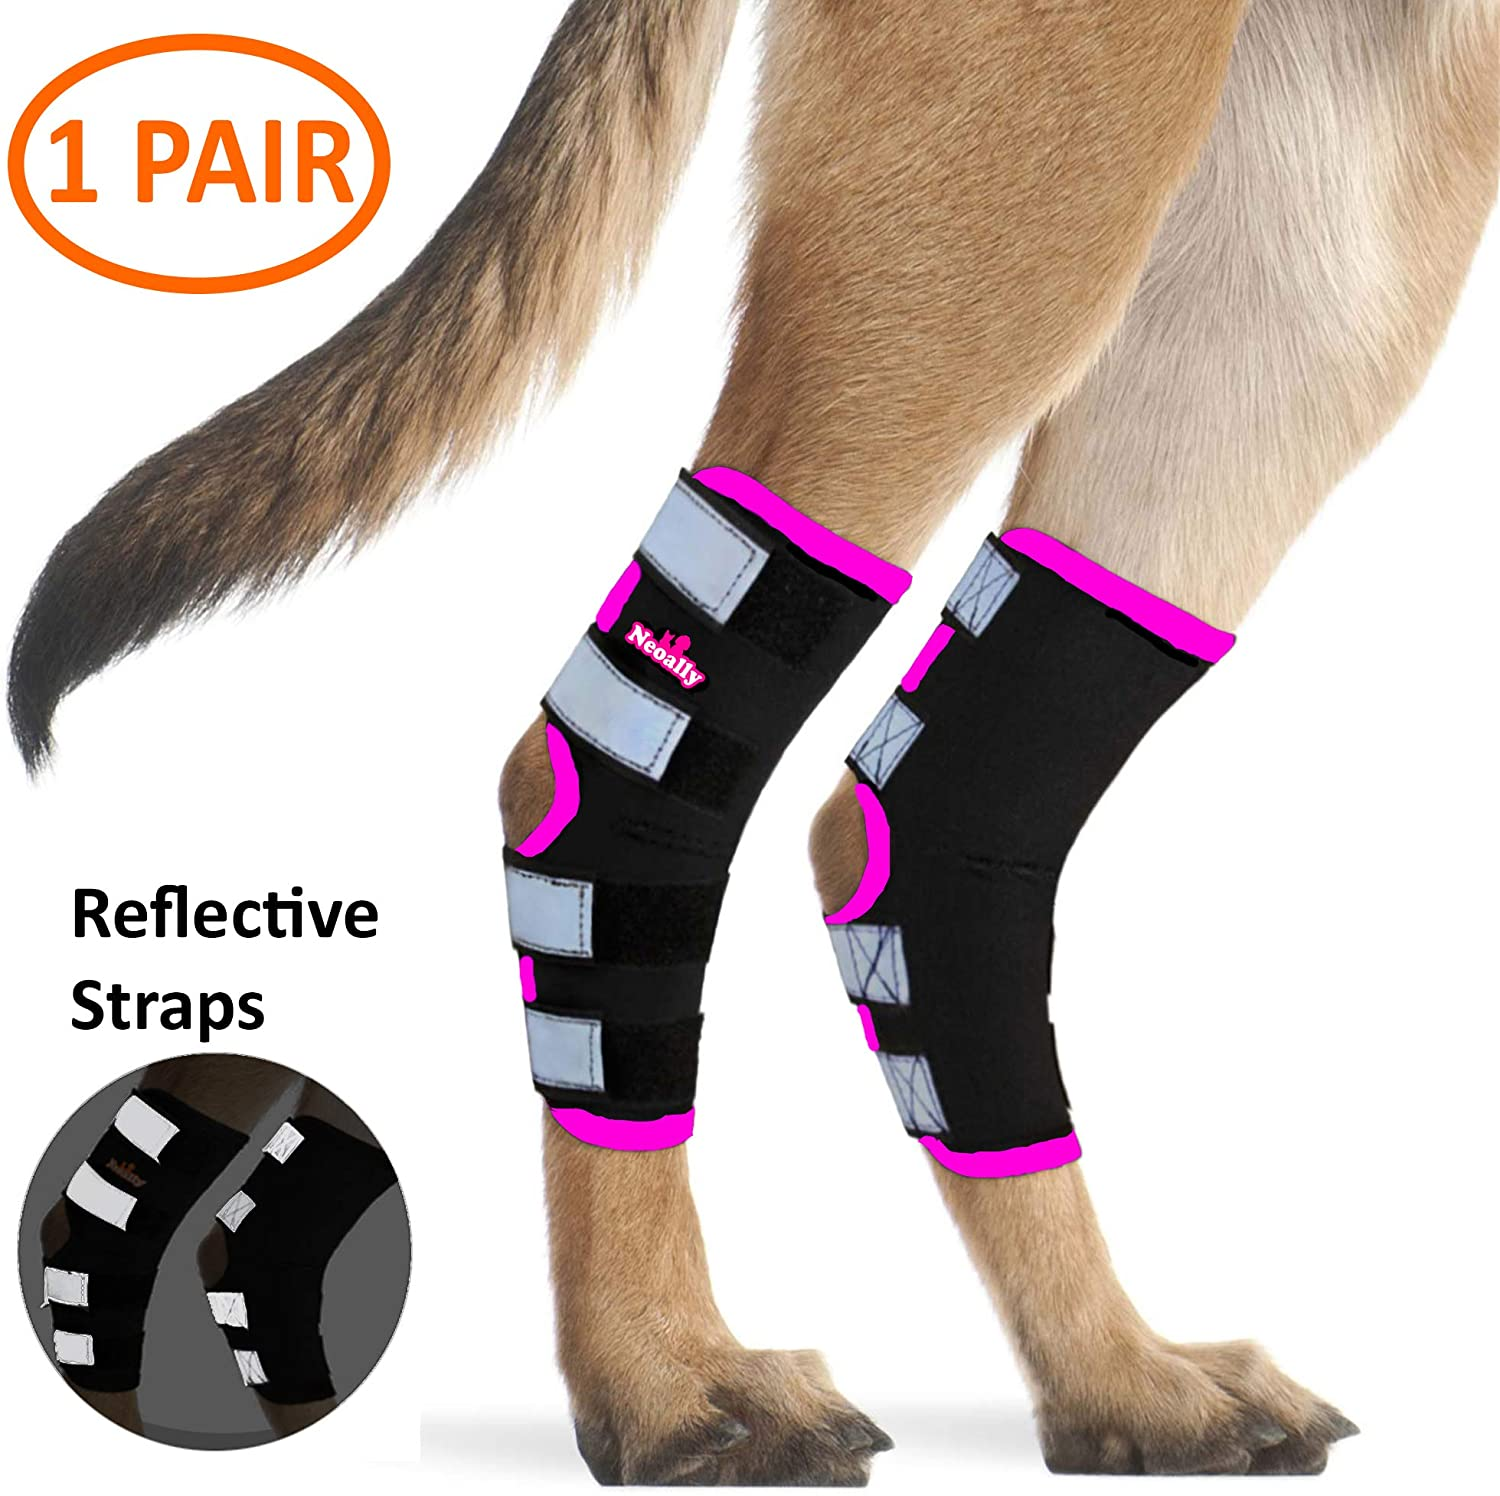 NeoAlly Dog Rear Leg Braces [Long Version] Canine Hind Hock Wraps with Safety Reflective Straps for Injury and Sprain Protection, Wound Healing and Loss of Stability from Arthritis - 3 Colors (Pair)